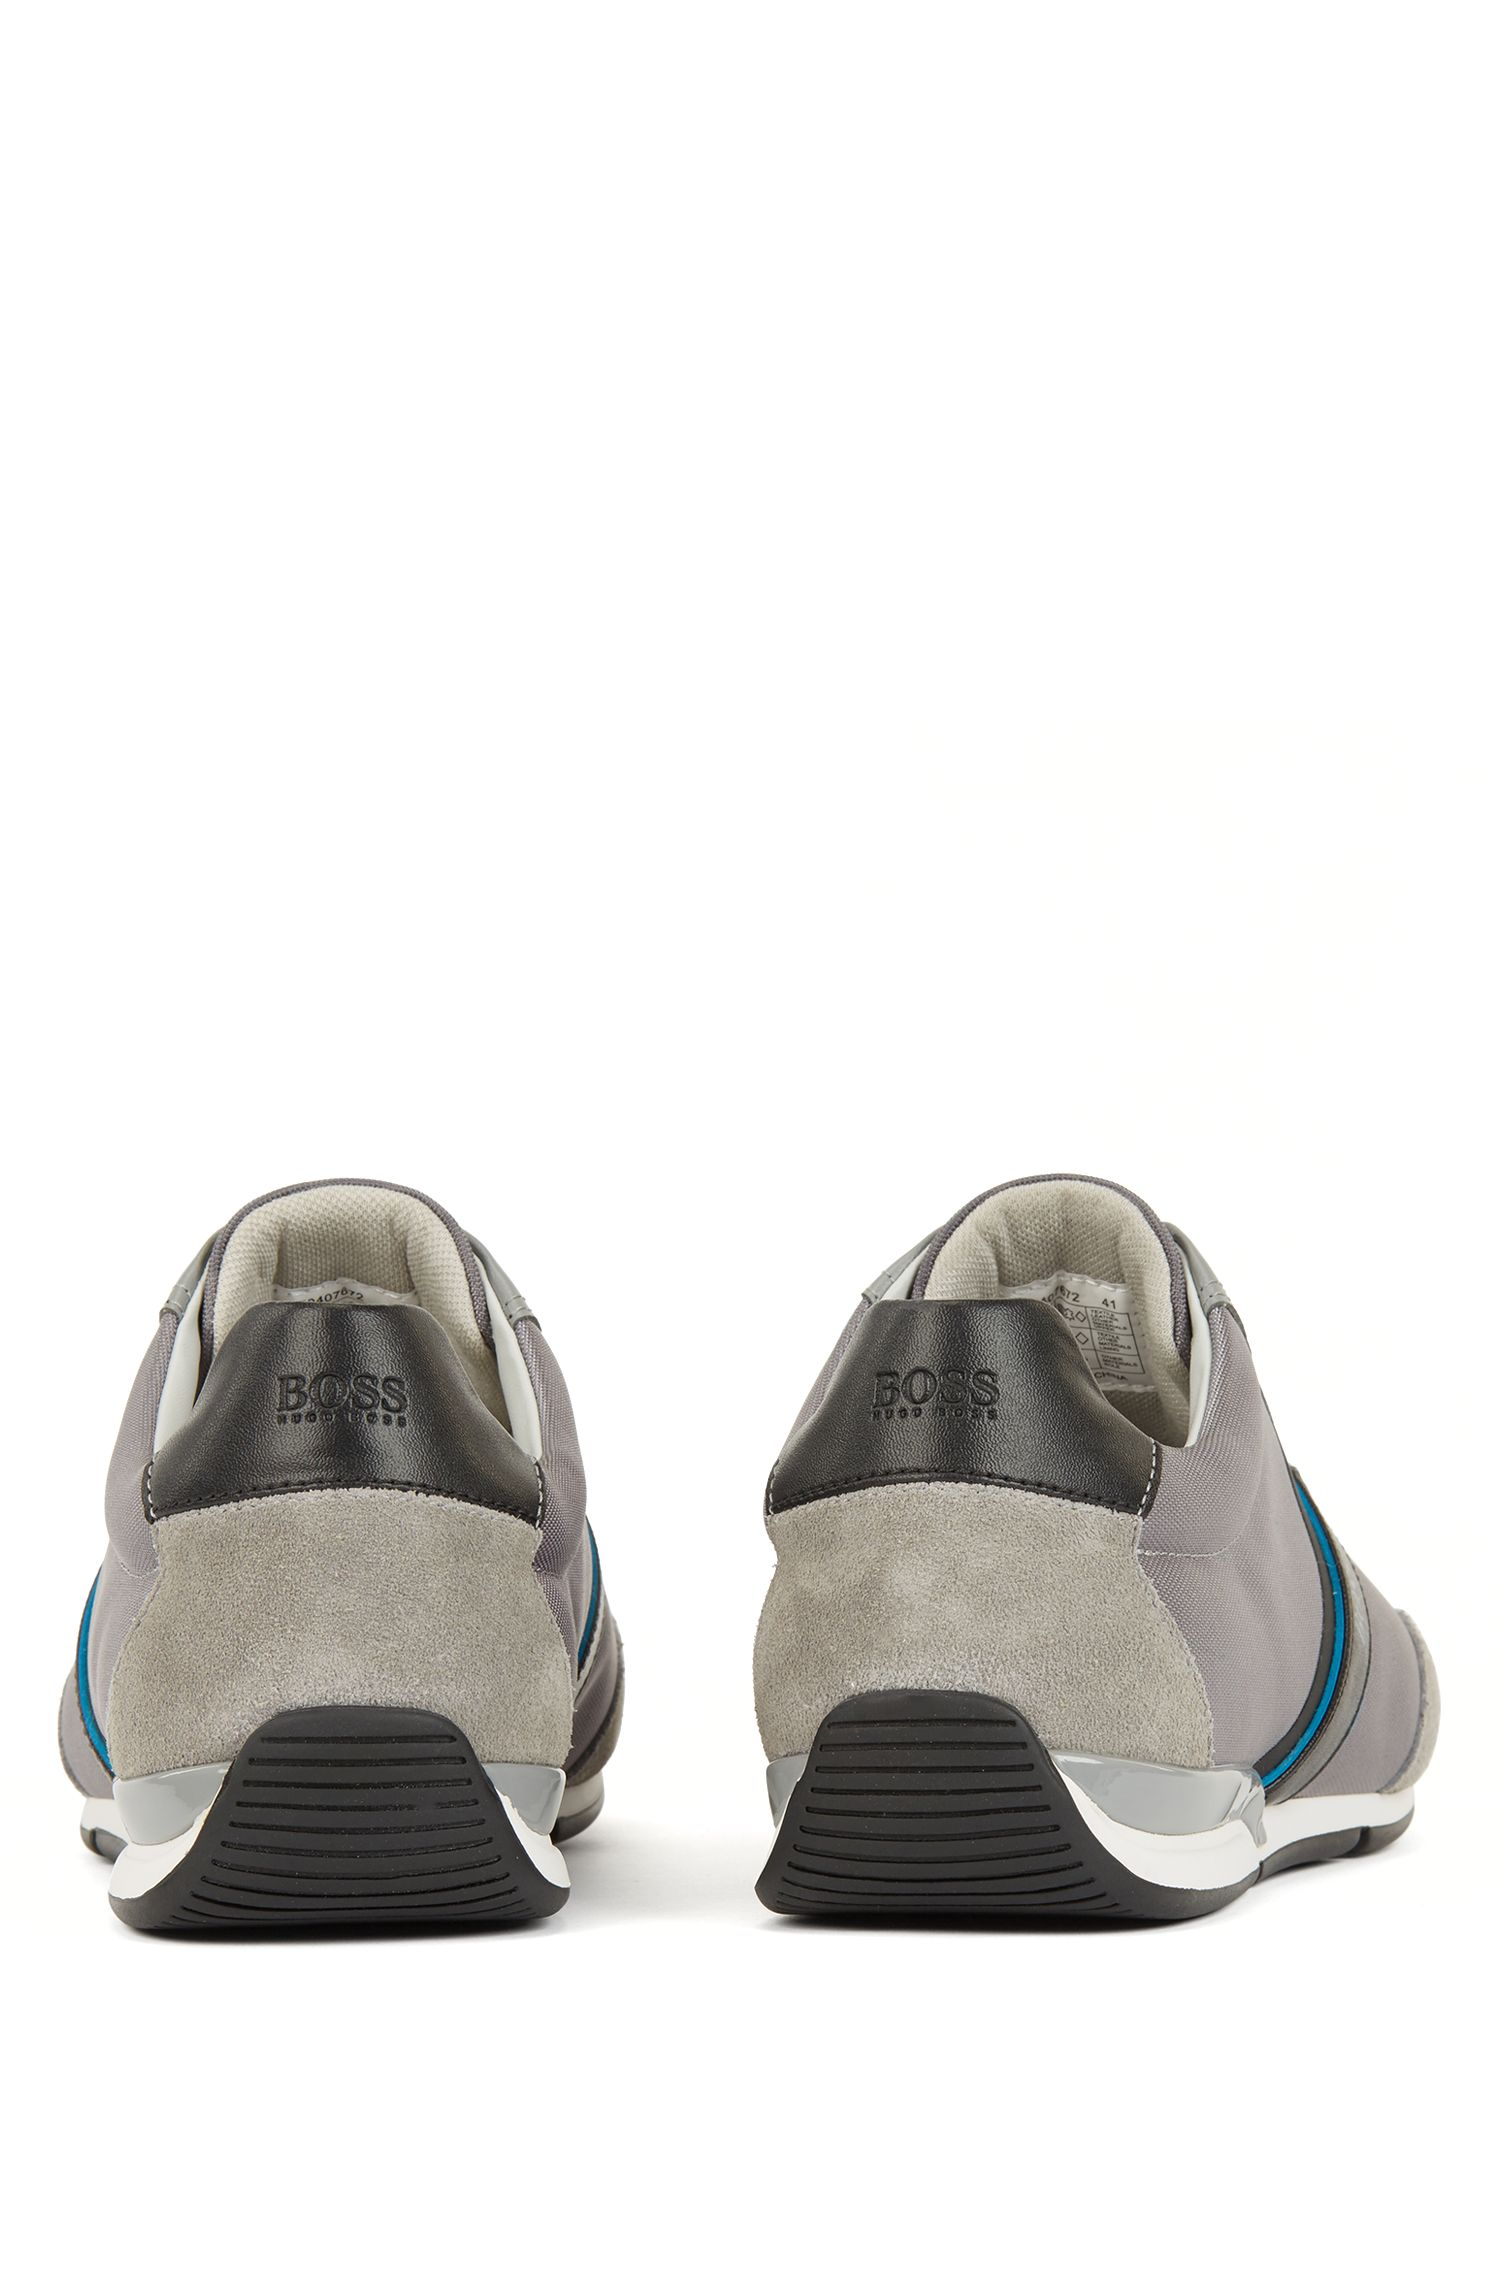 Hugo Boss - Lace-up hybrid trainers with moisture-wicking lining - 5